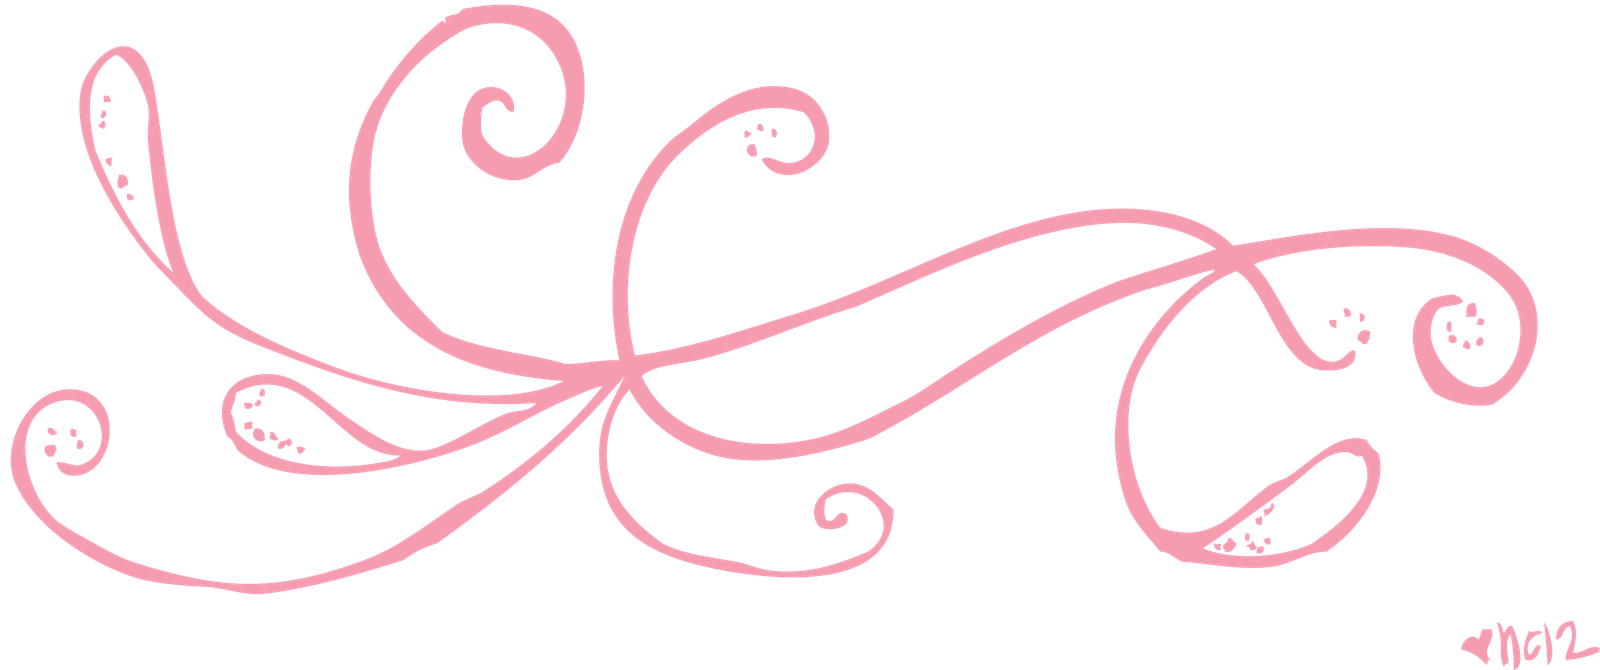 1600x670 Lines Clipart Pink